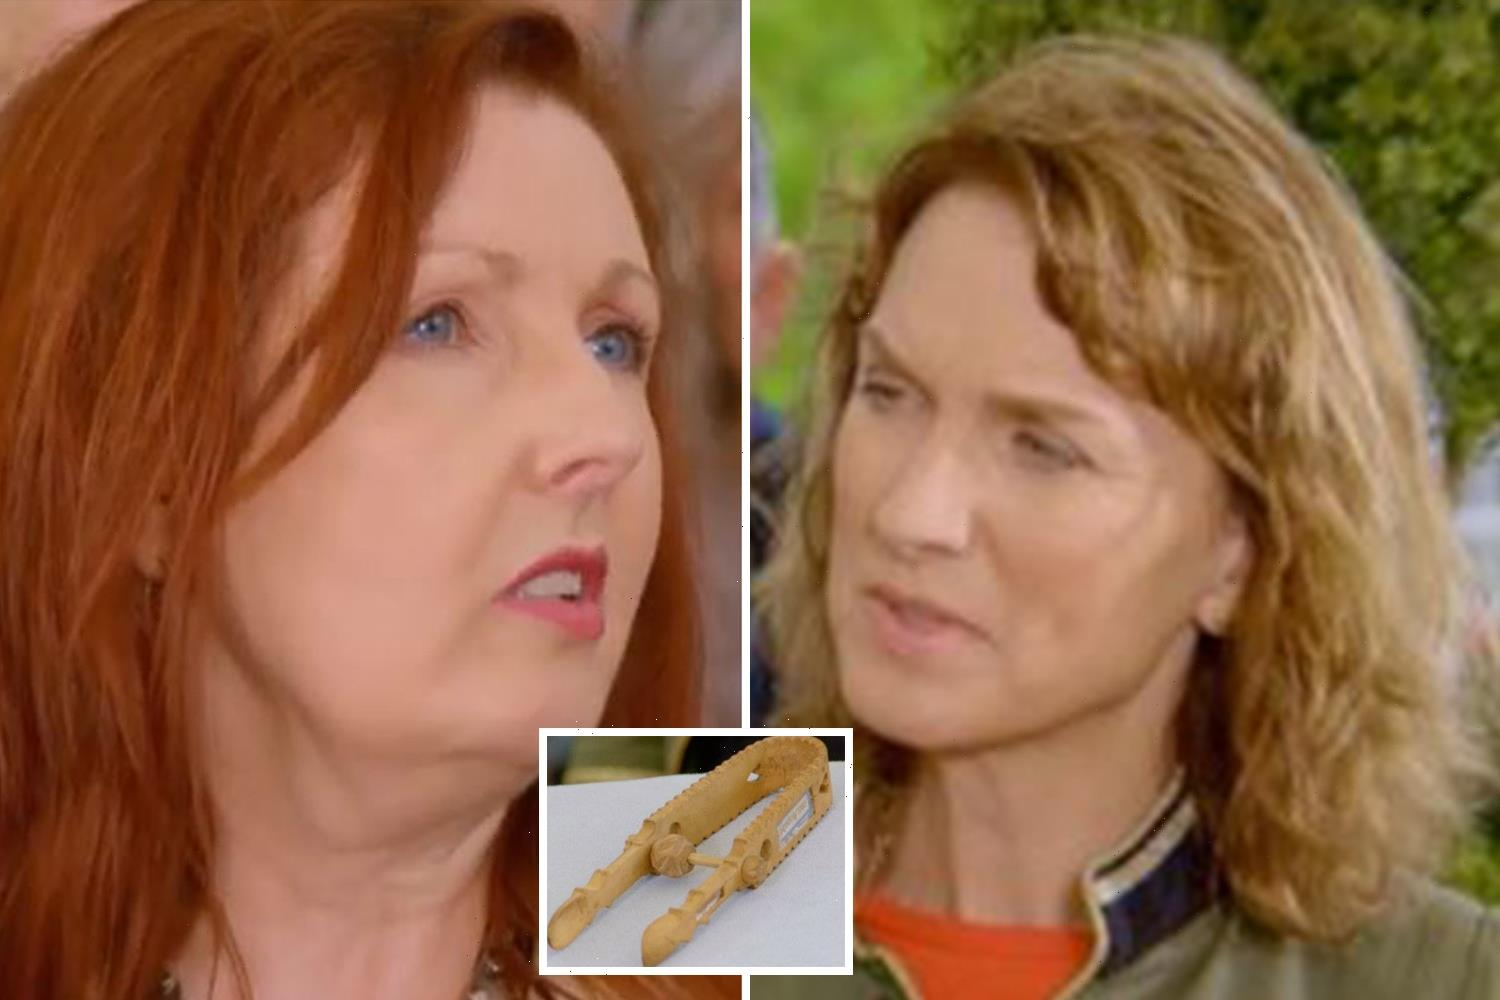 Antiques Roadshow's Fiona Bruce red-faced as co-star shows off her 'sugar nips' in cheeky game